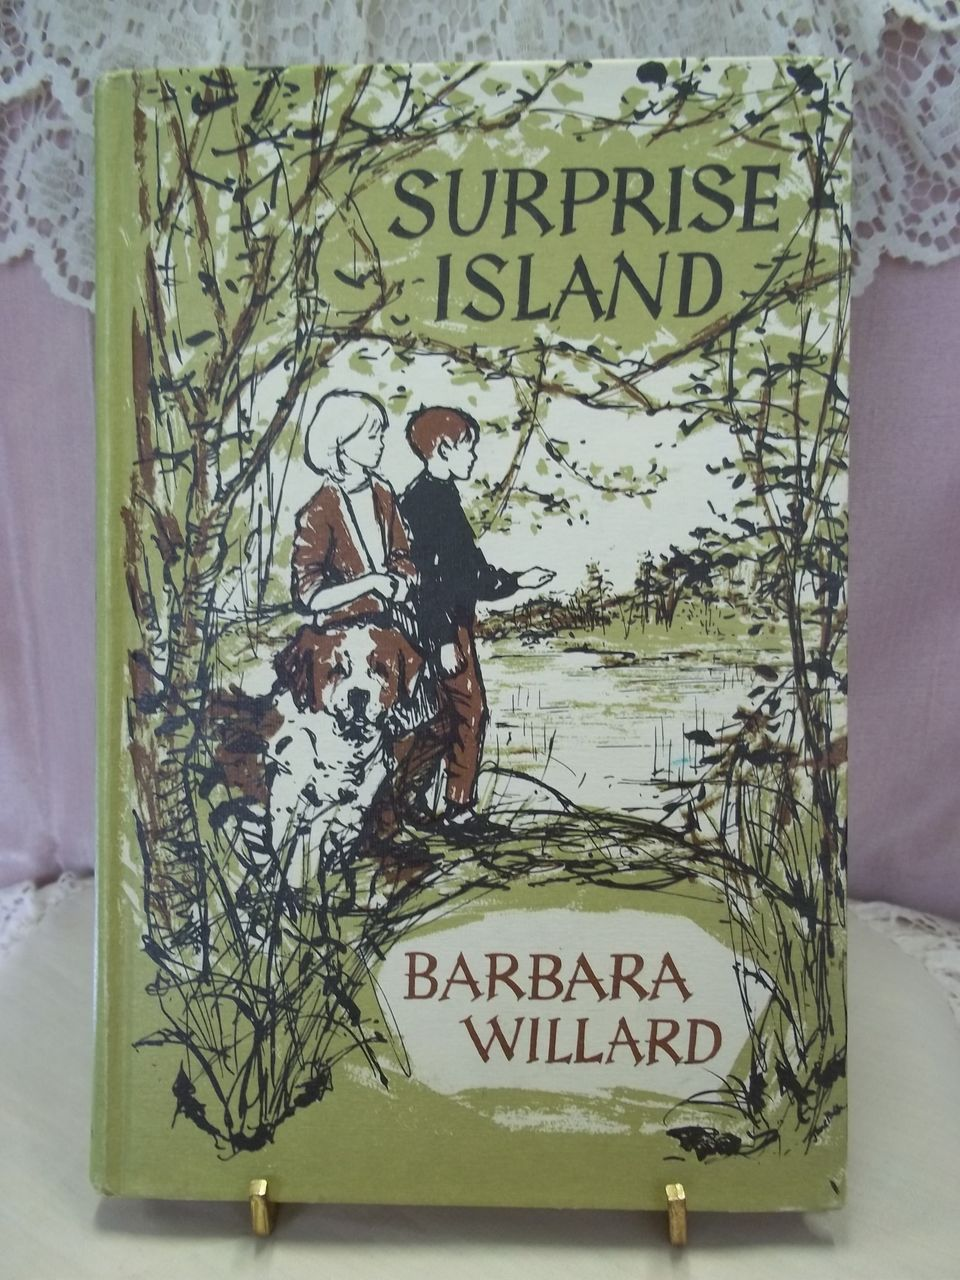 Surprise Island, Barbara Willard, Meredith Press 1969, Weekly Reader Children's Book Club HC